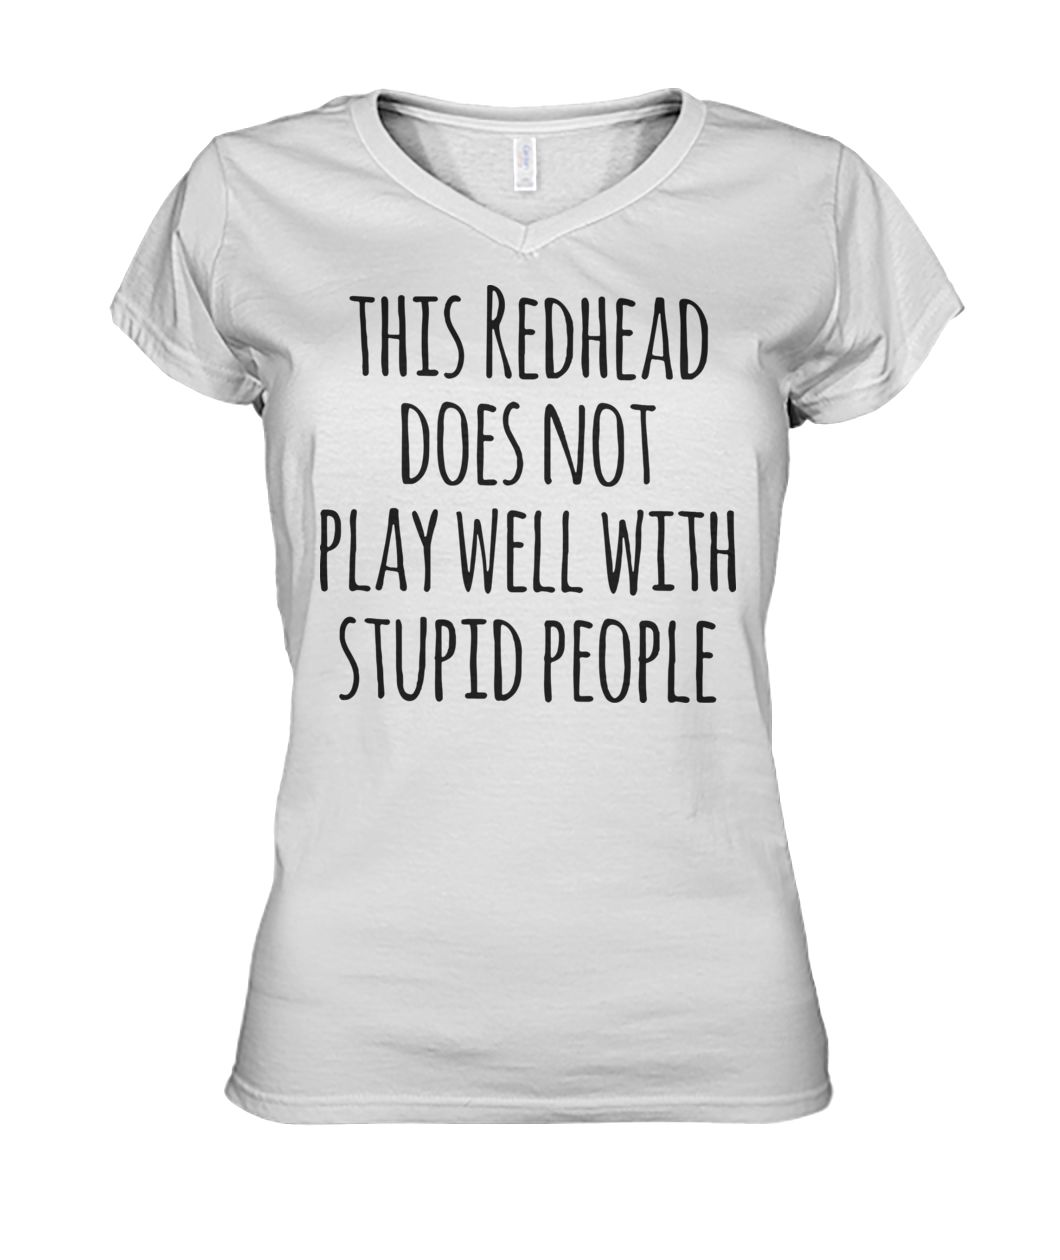 This redhead does not play well with stupid people women's v-neck